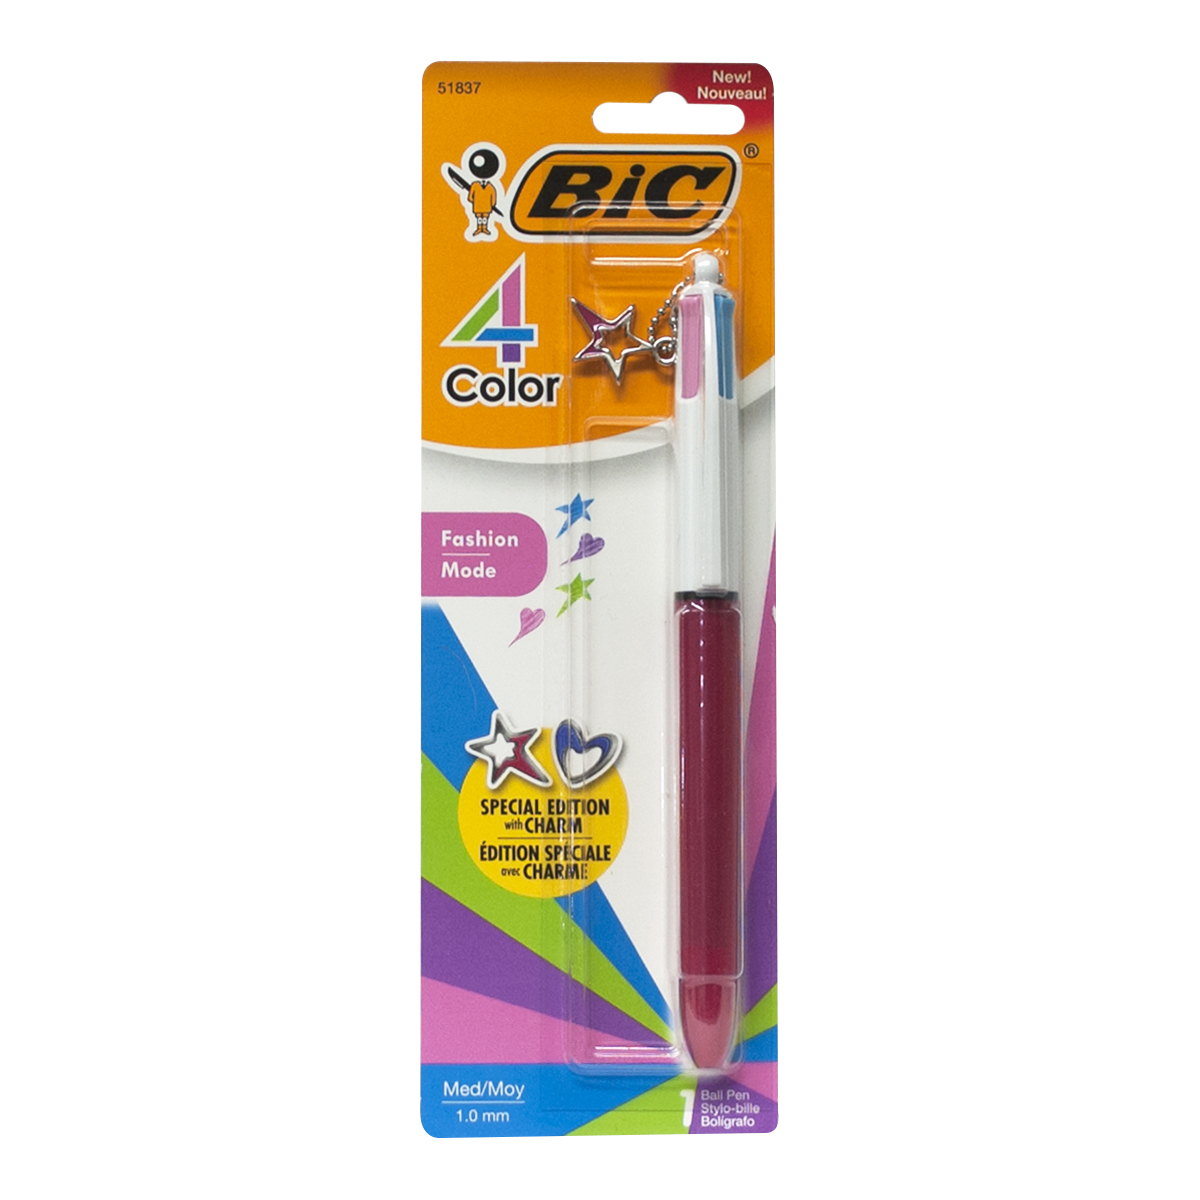 Bic 4-Color Multi-Ink Ballpoint Pen with Charm, Medium Point 1.0mm, Pink Barrel